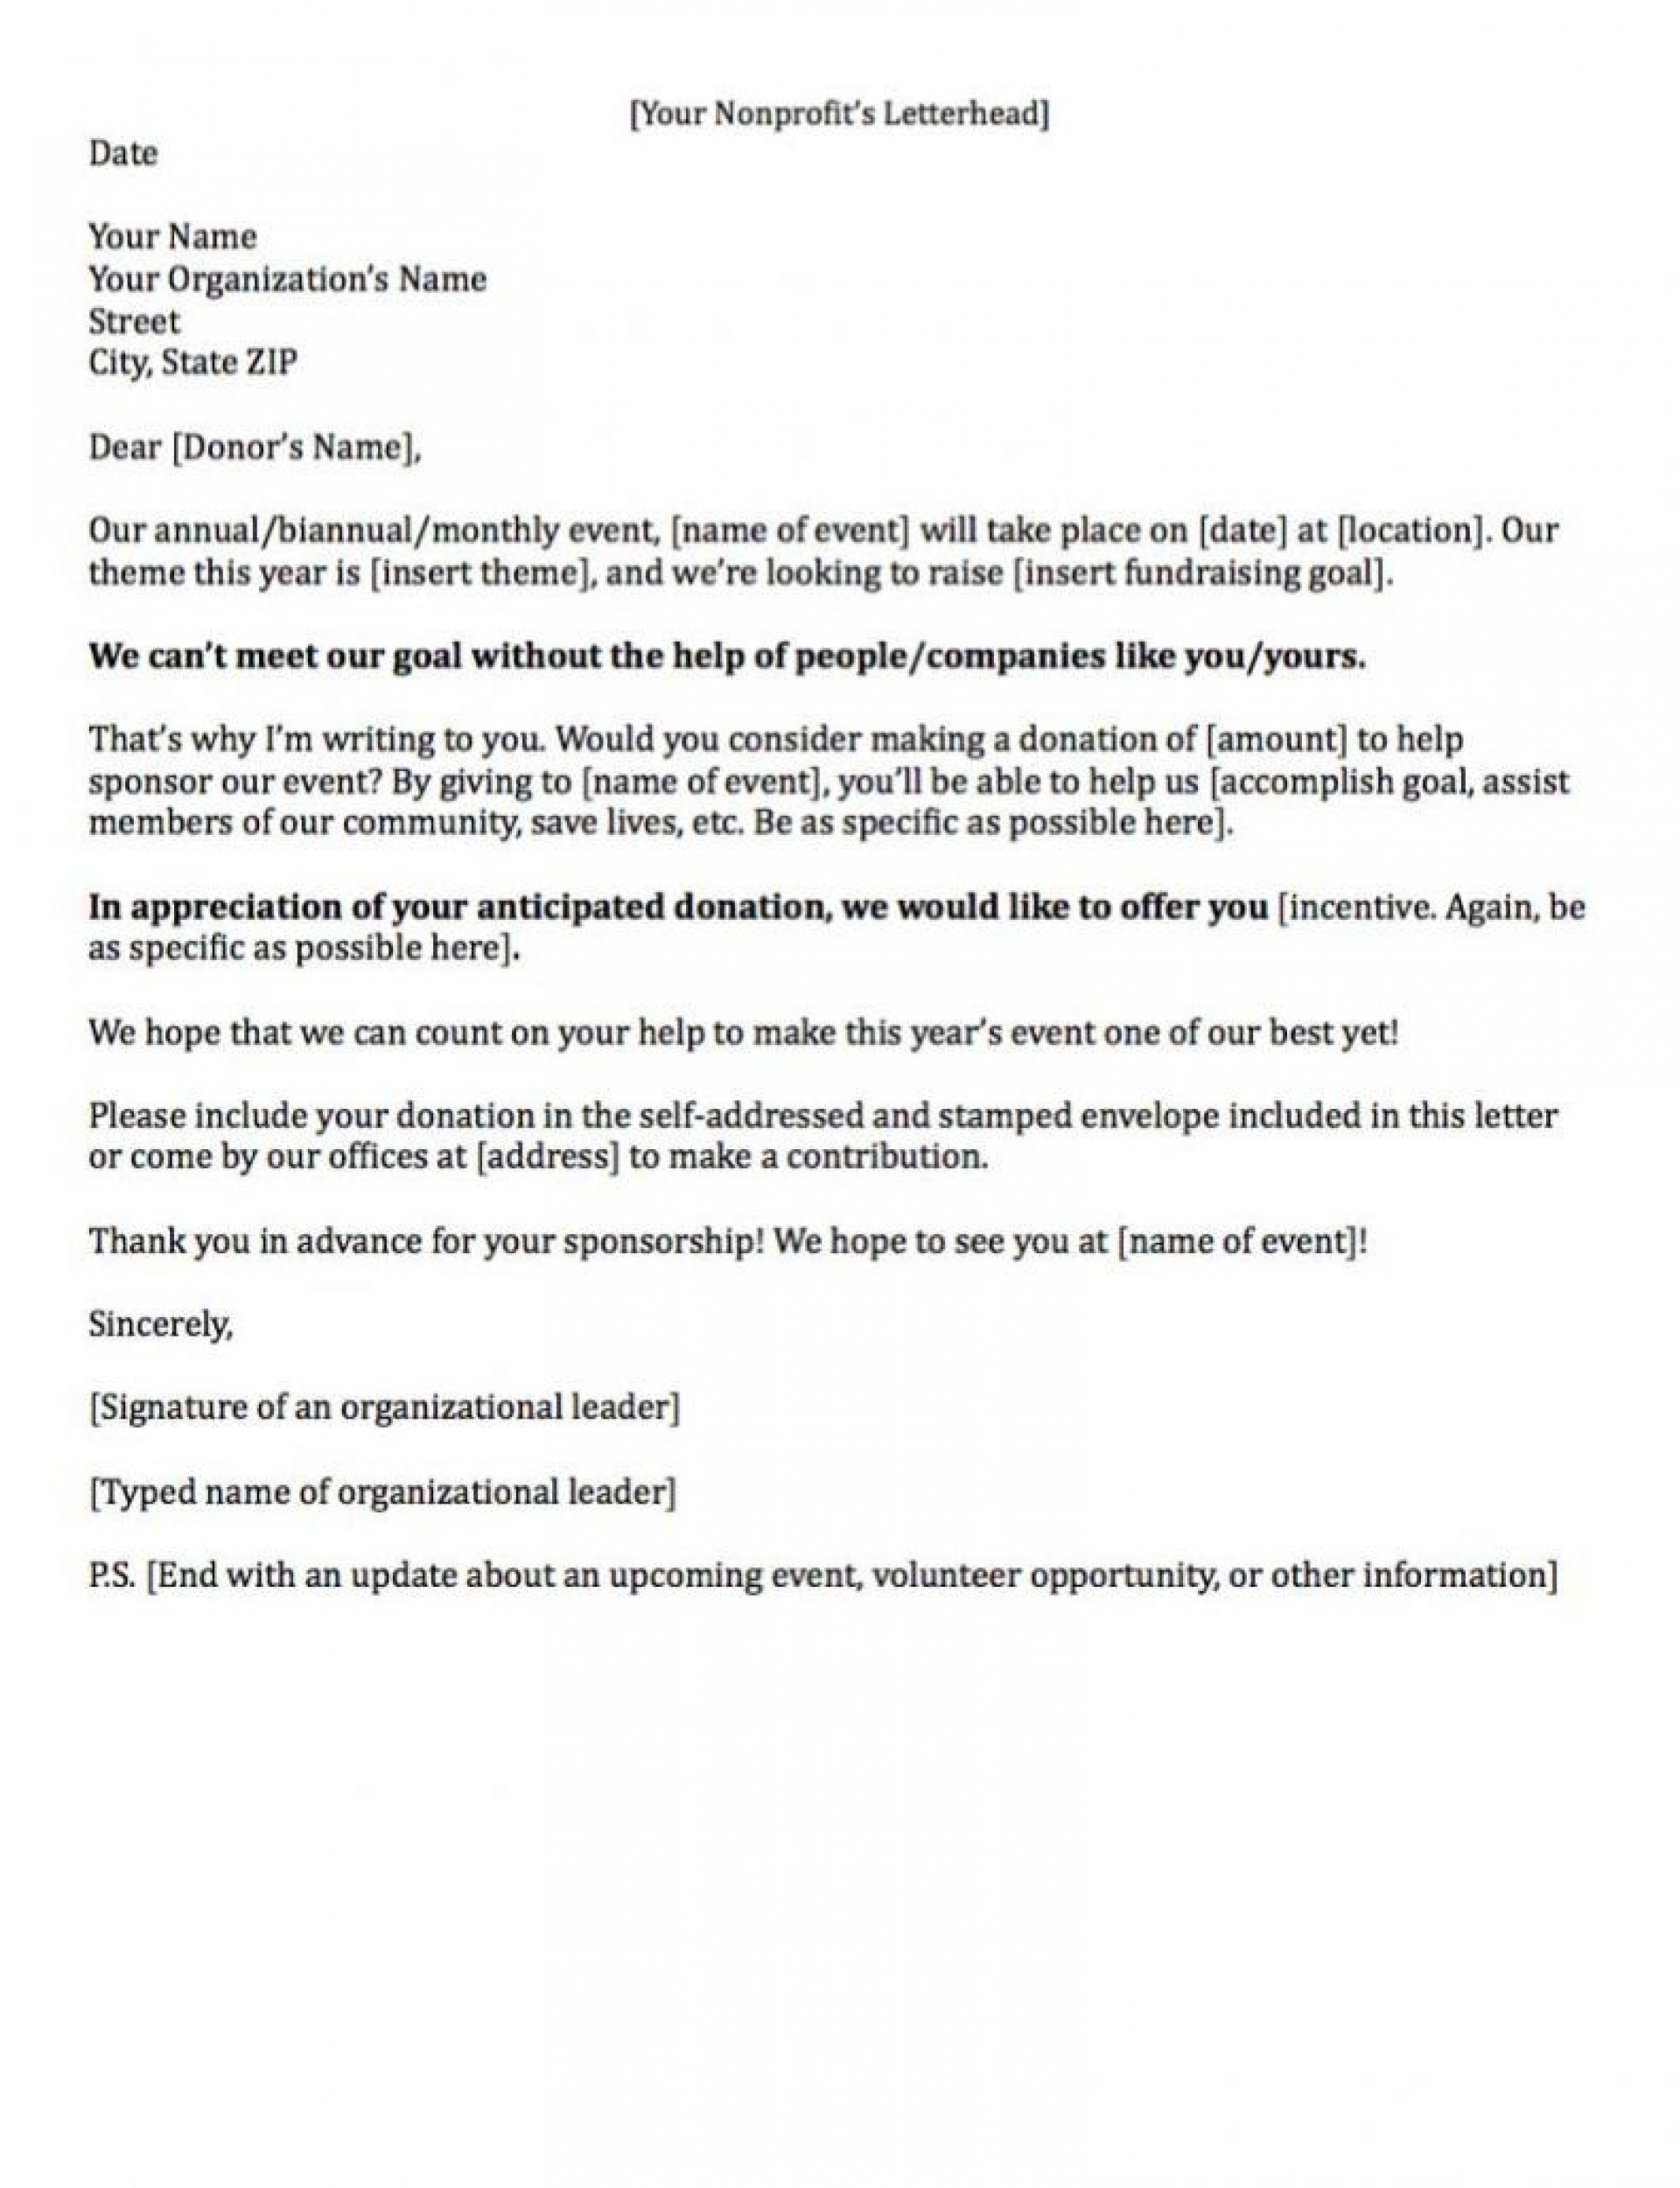 008 Archaicawful Fund Raising Letter Template Idea  Templates Example Of Fundraising Appeal For Mission Trip Uk1920